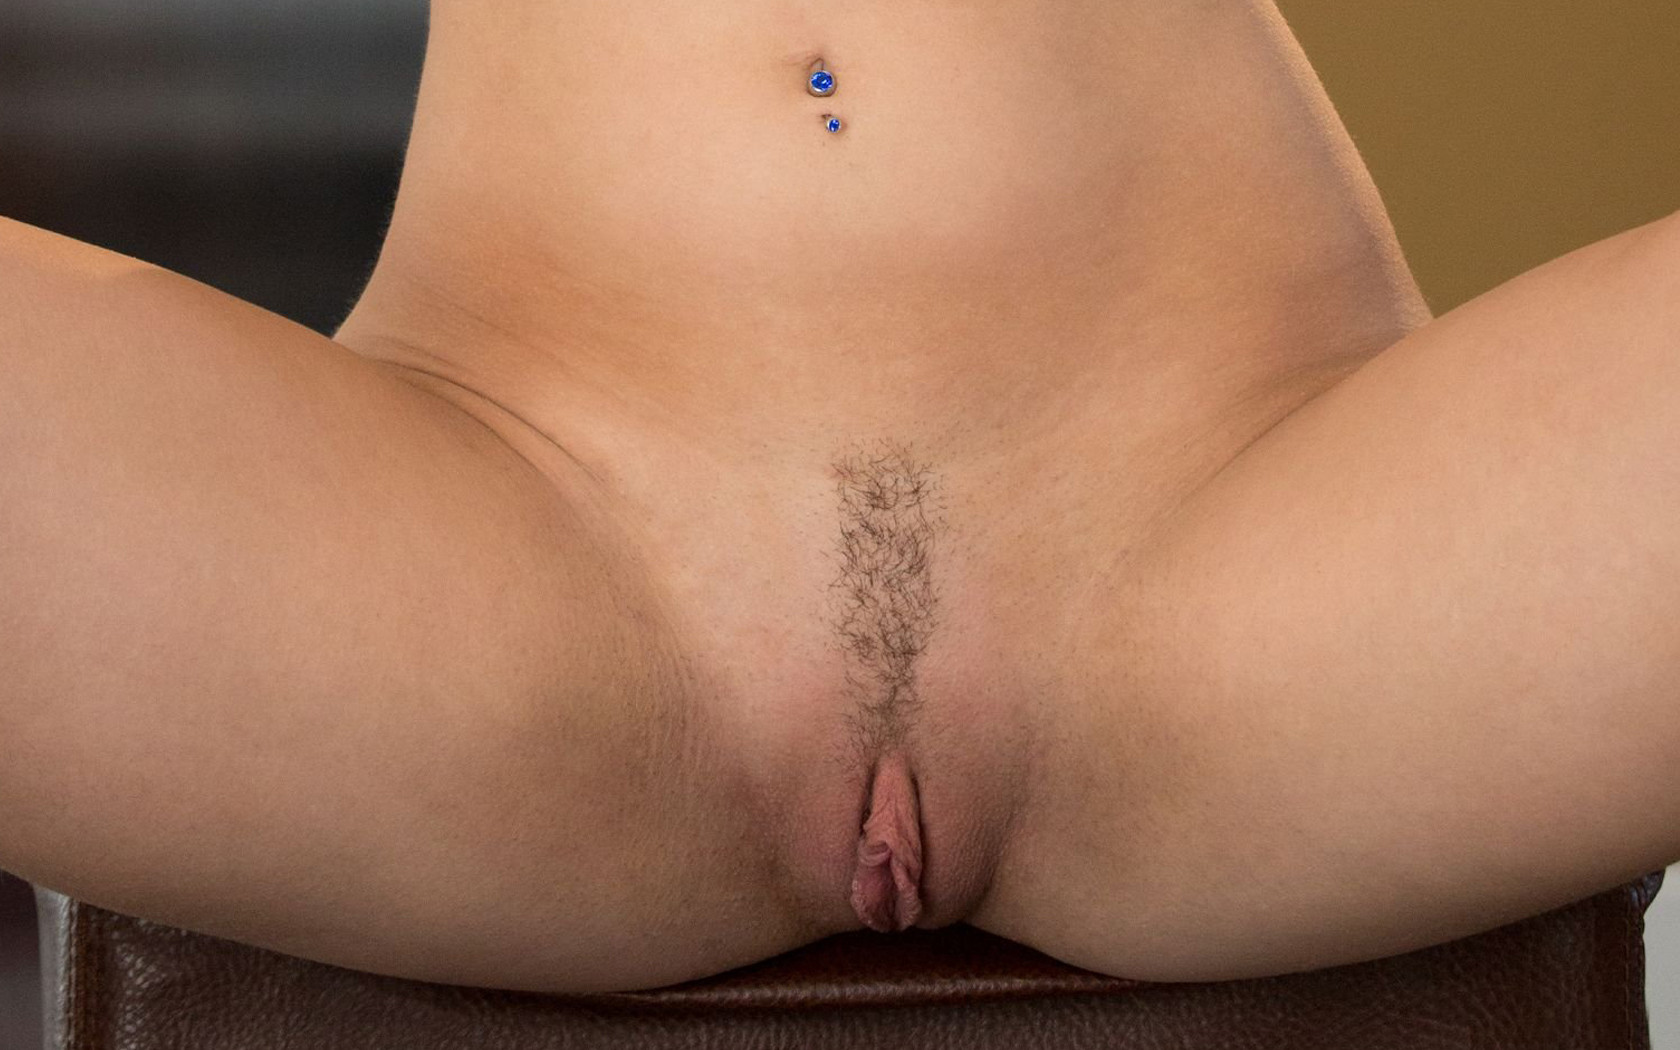 Landing strip vaginas